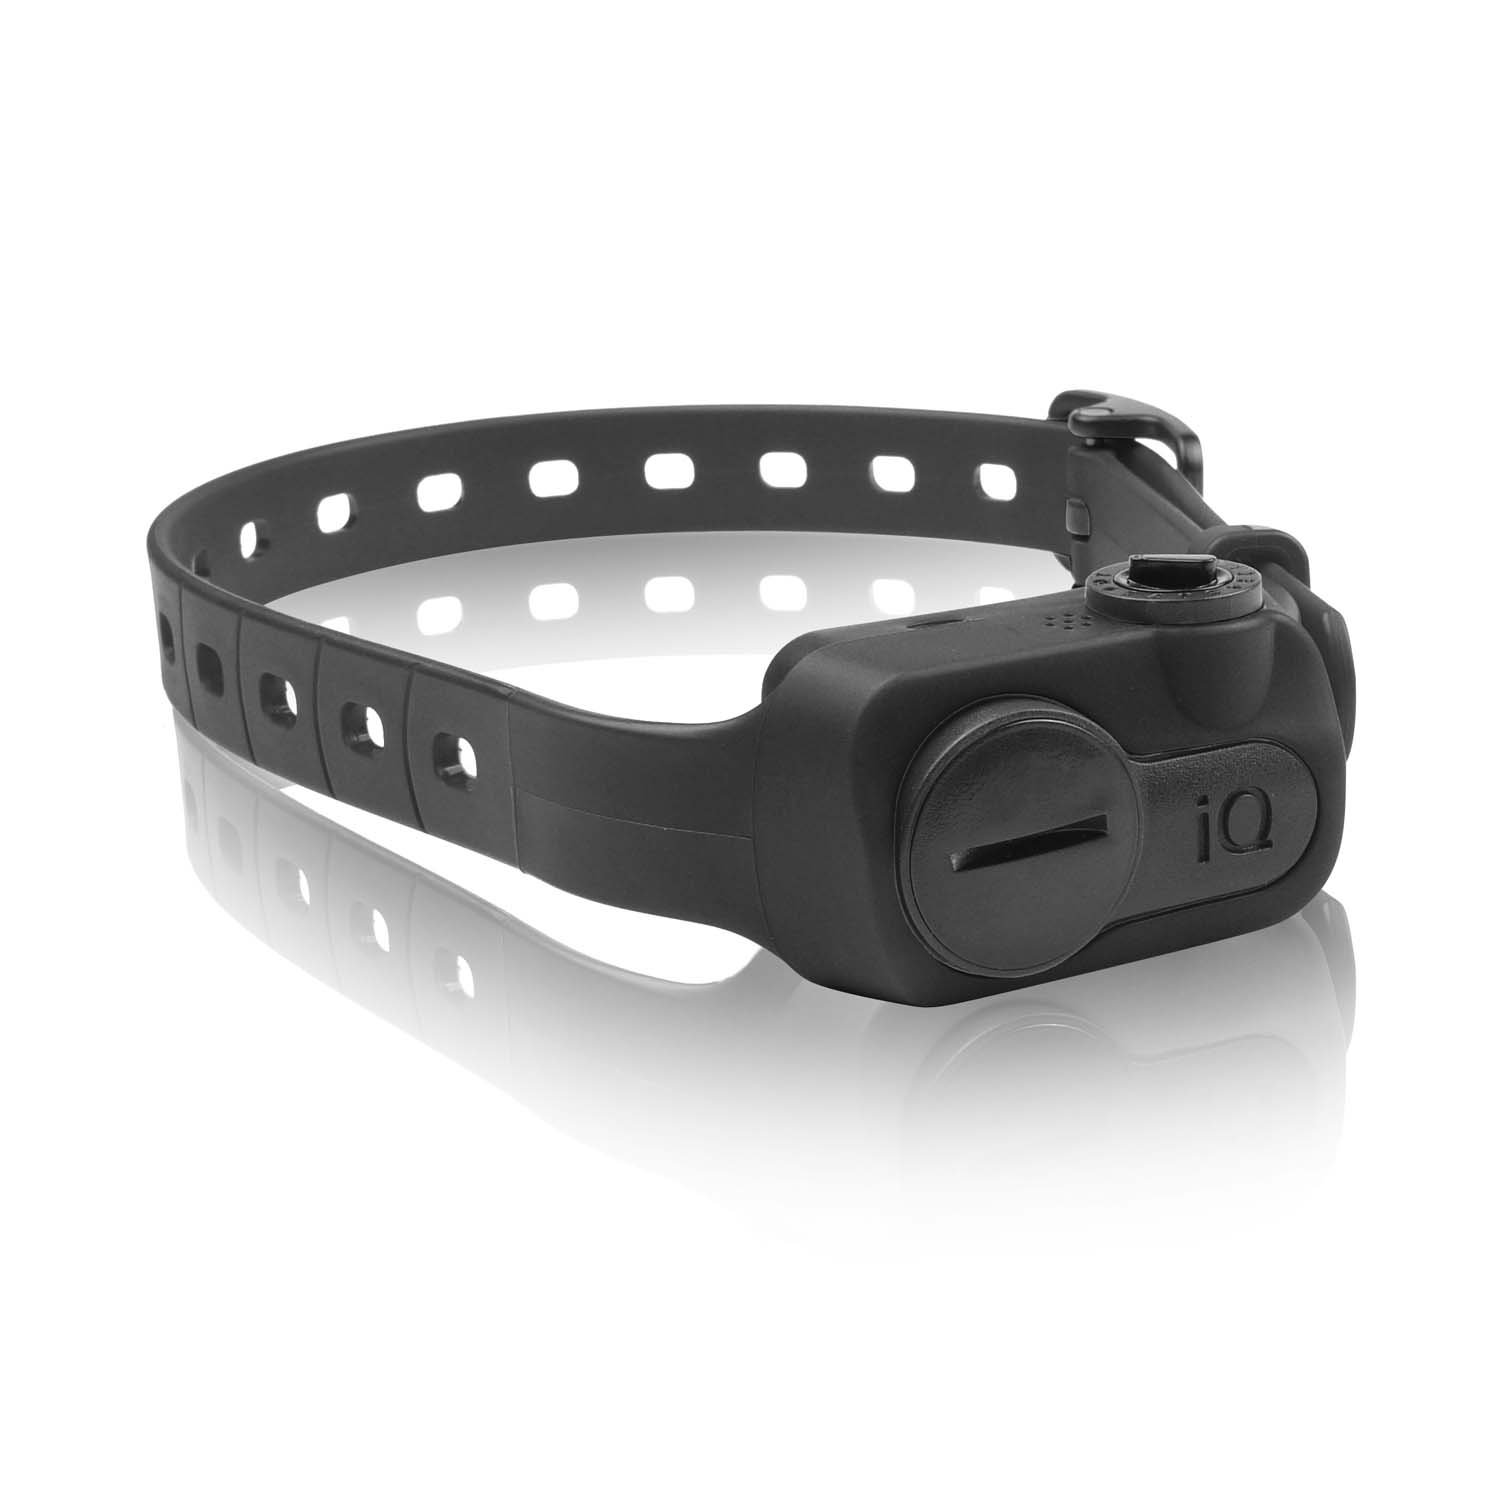 Iq Dog Bark Collar